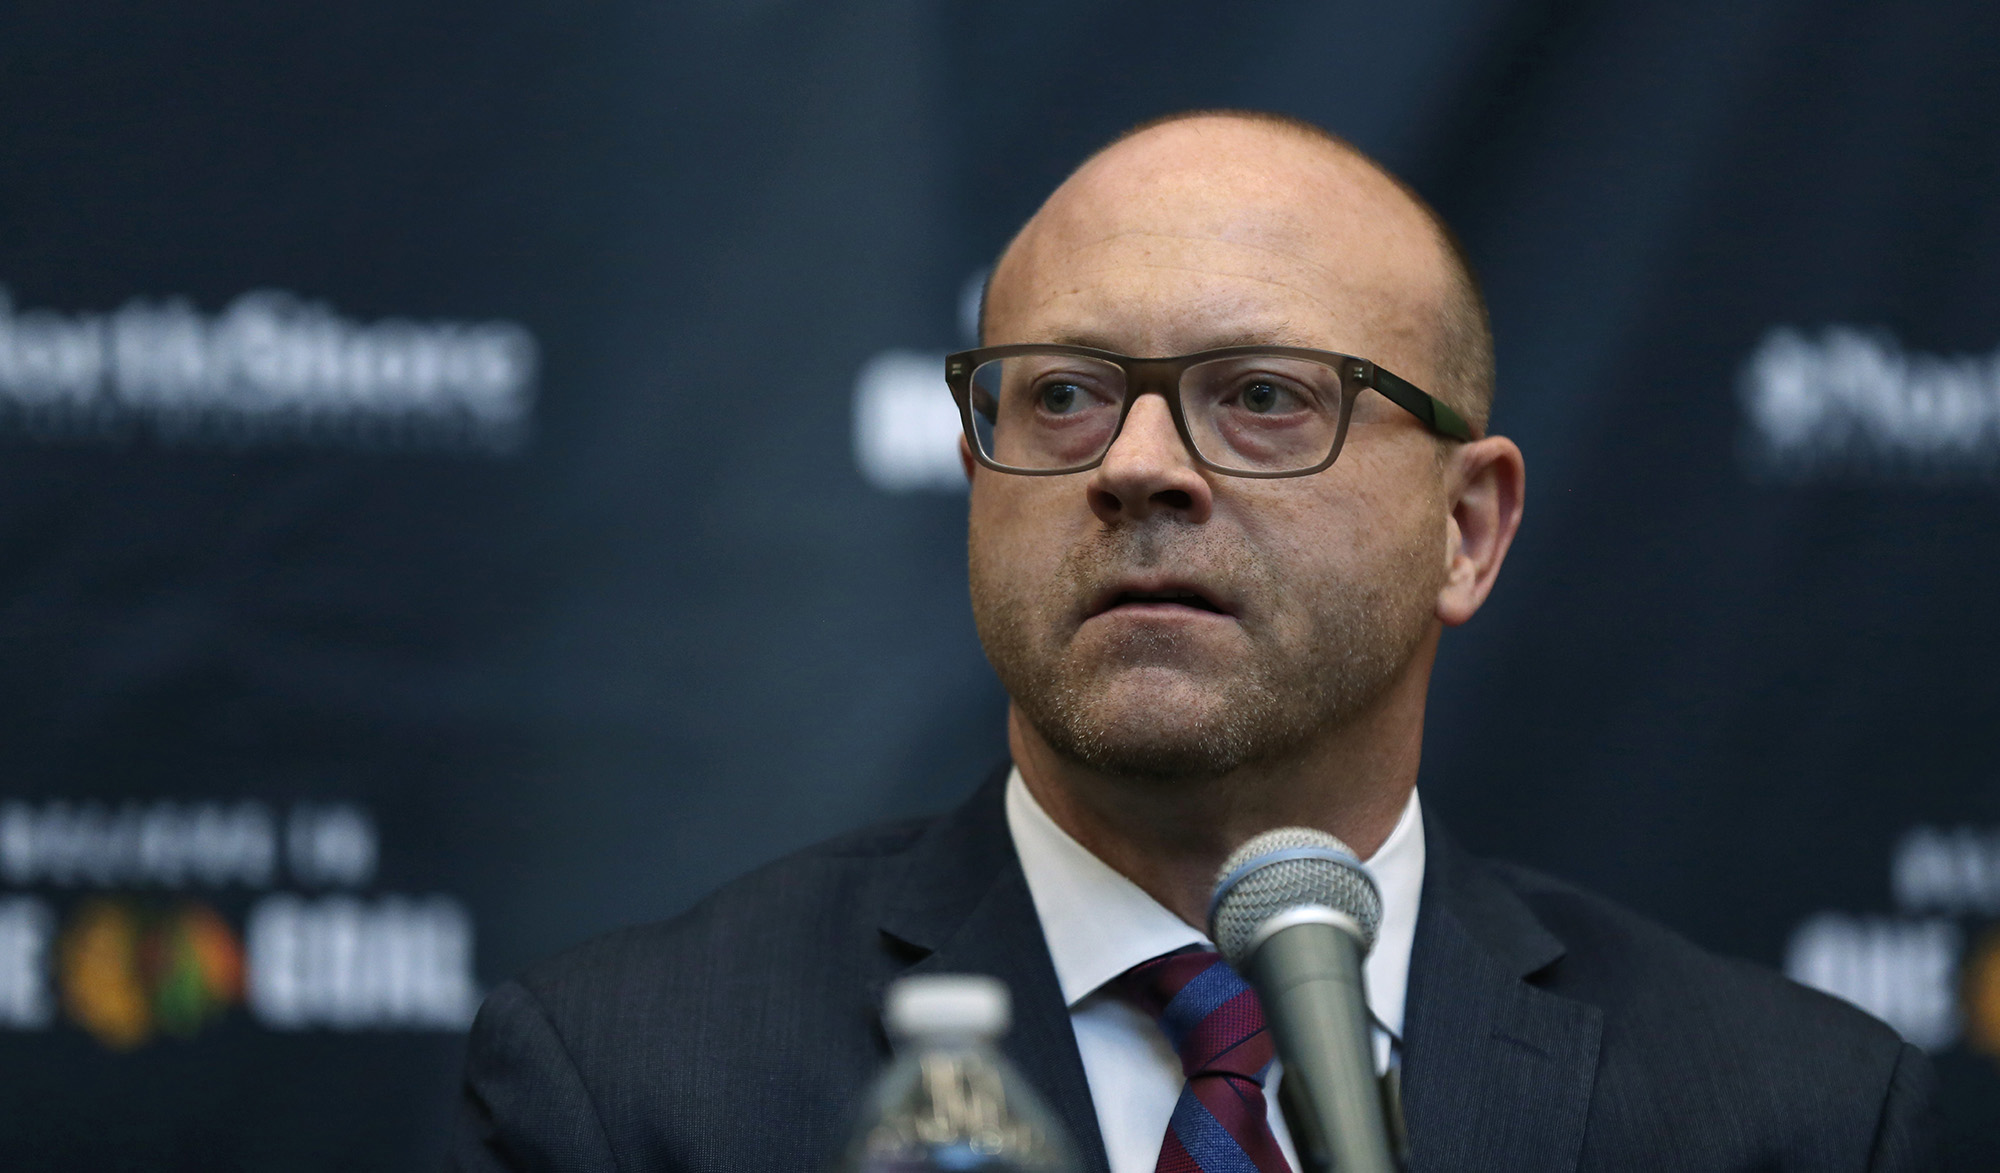 Blackhawks GM Stan Bowman says team not close to making trade despite having millions in salary-cap space